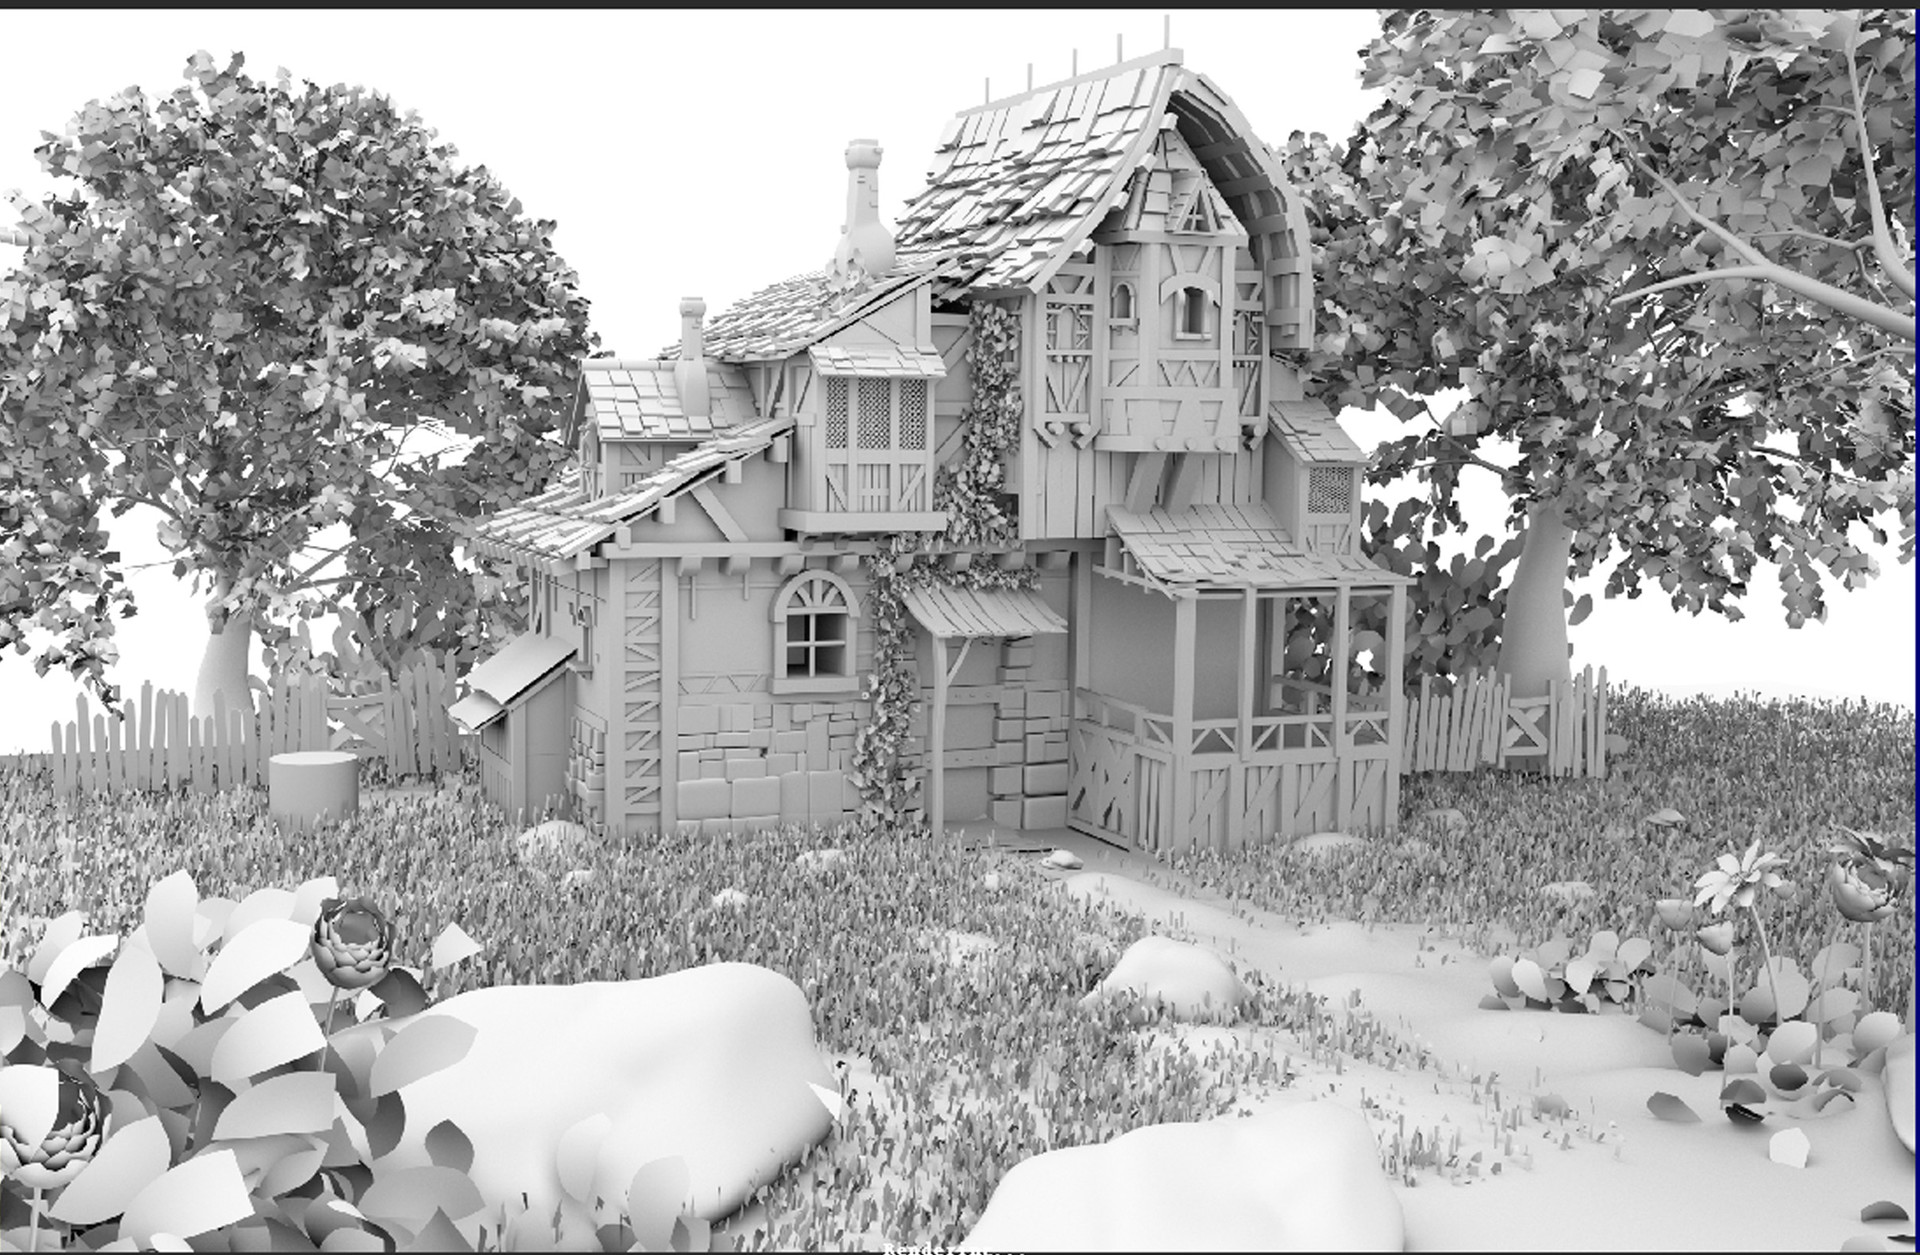 ArtStation - self practicing  3d environment modeling   Working in